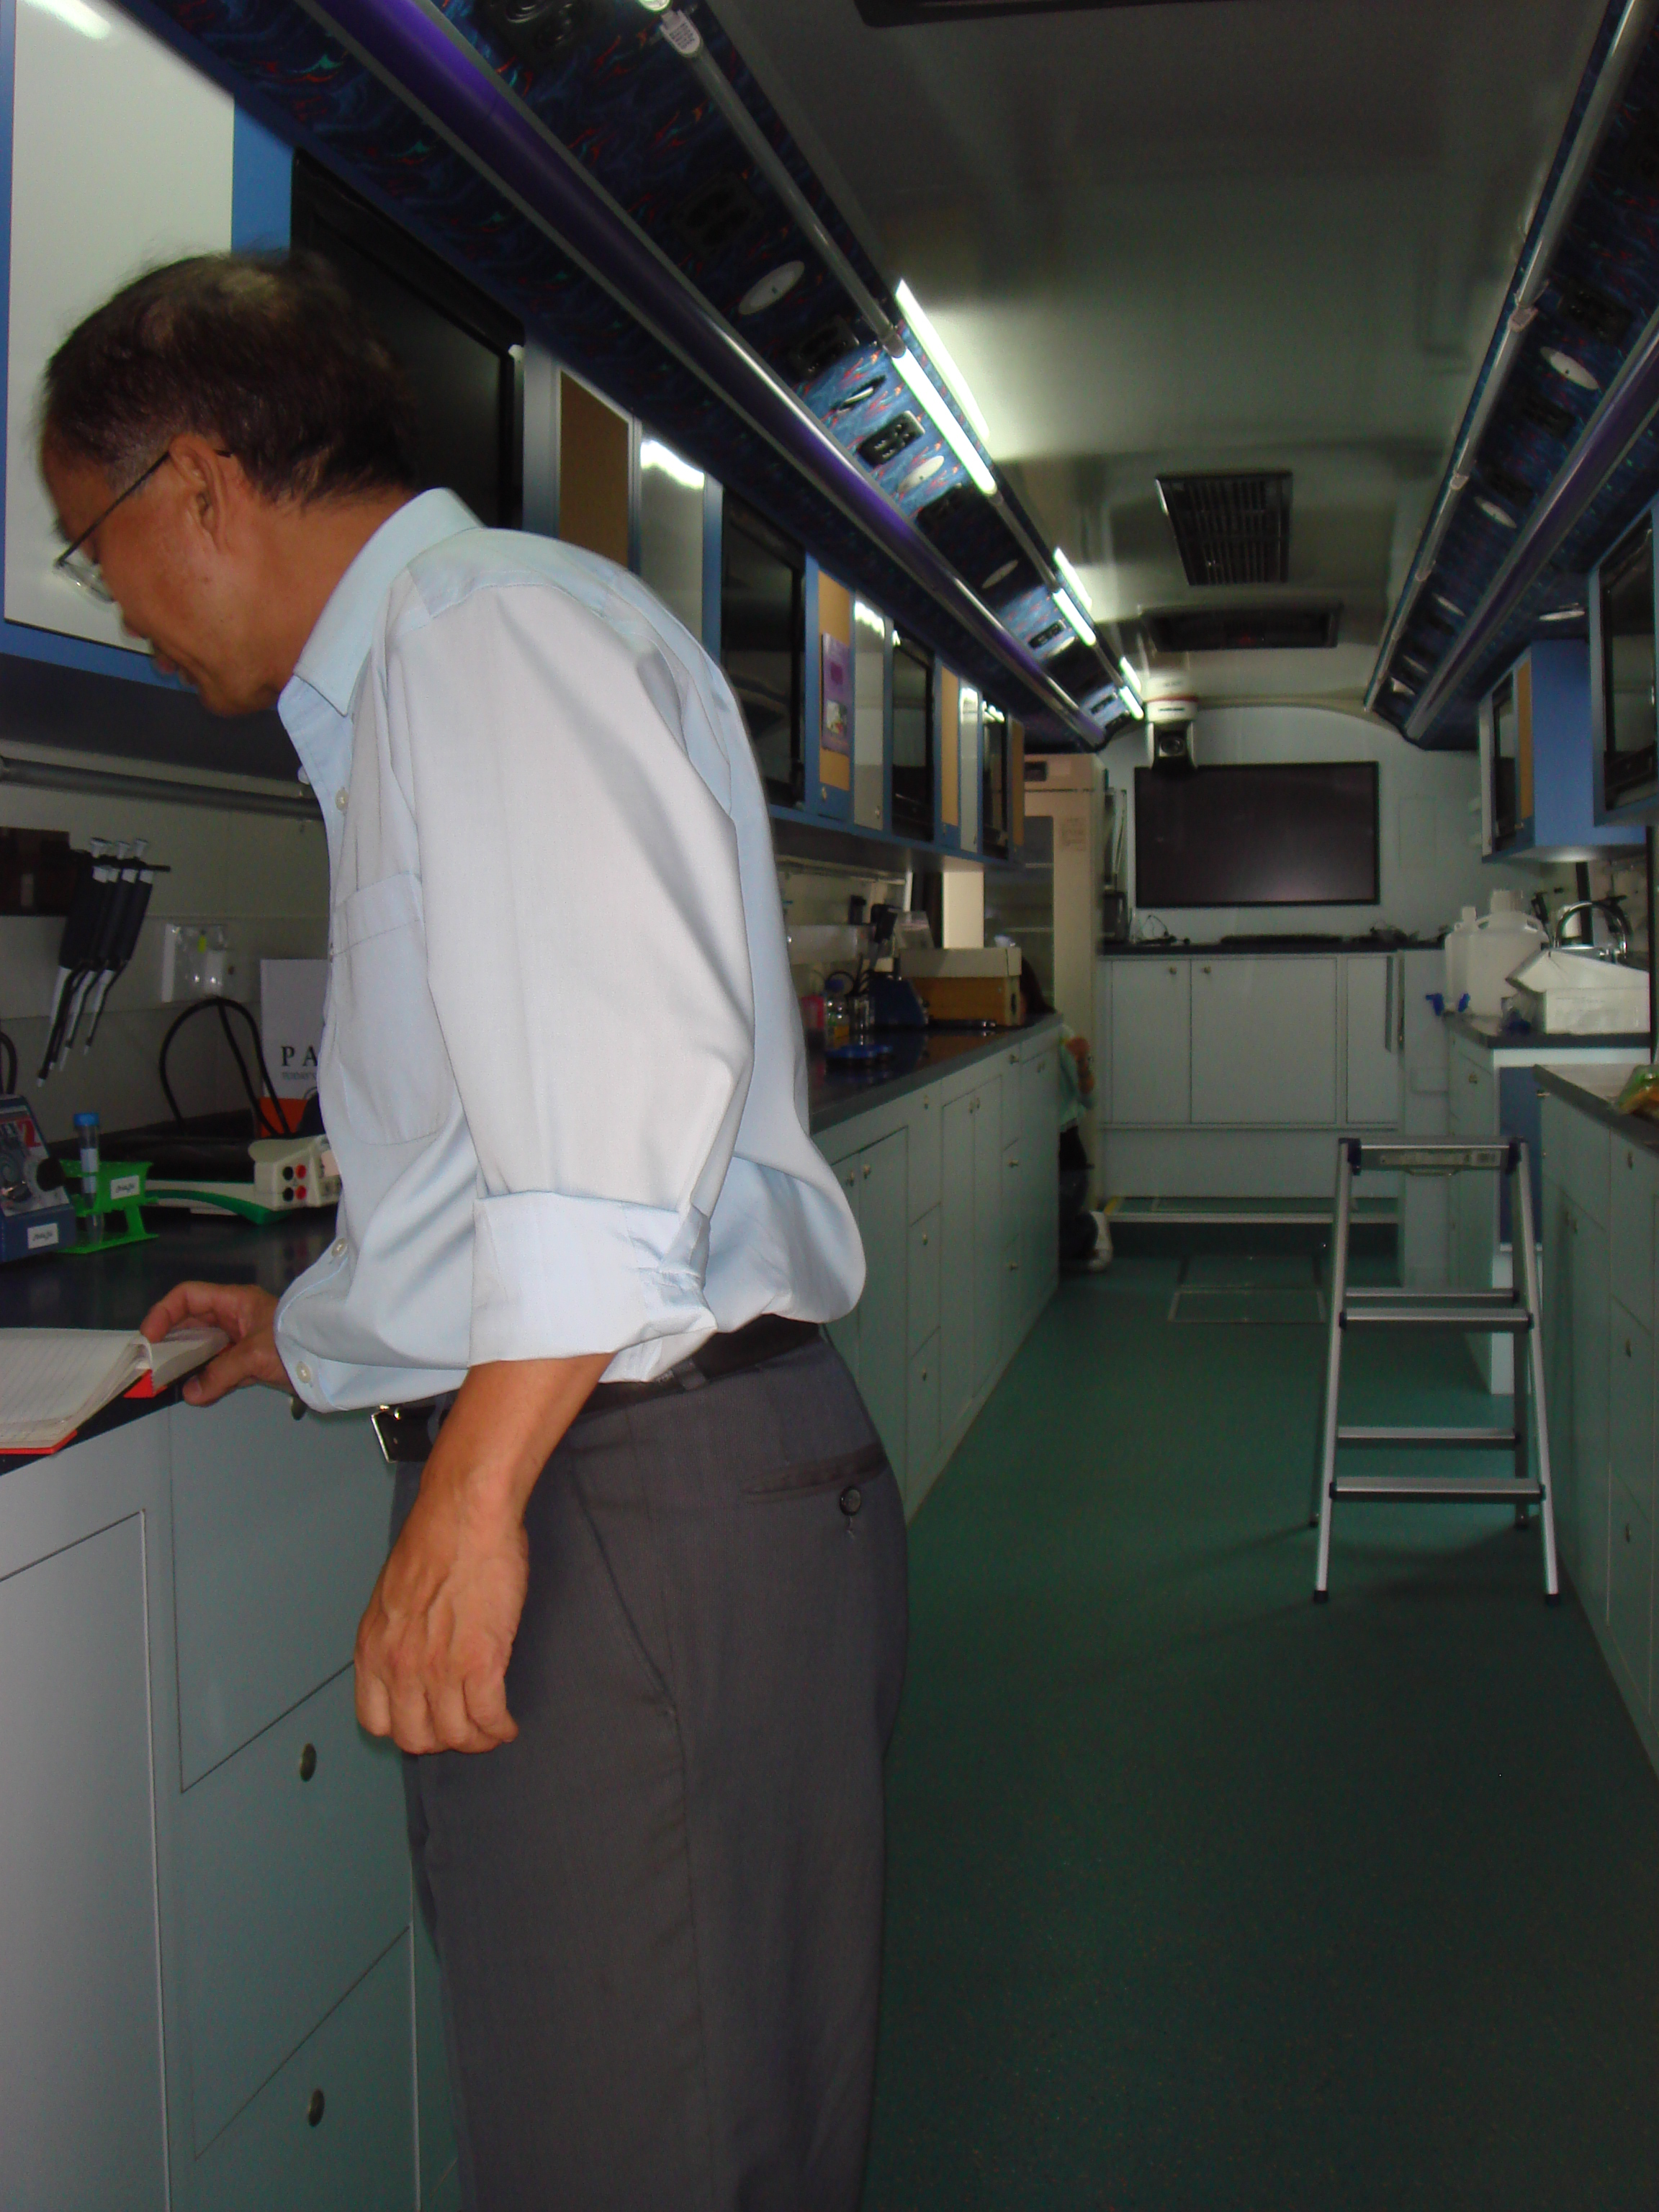 An overview of the inside of the bus. I am amazed that it is designed for holding a full class of 40+ students.